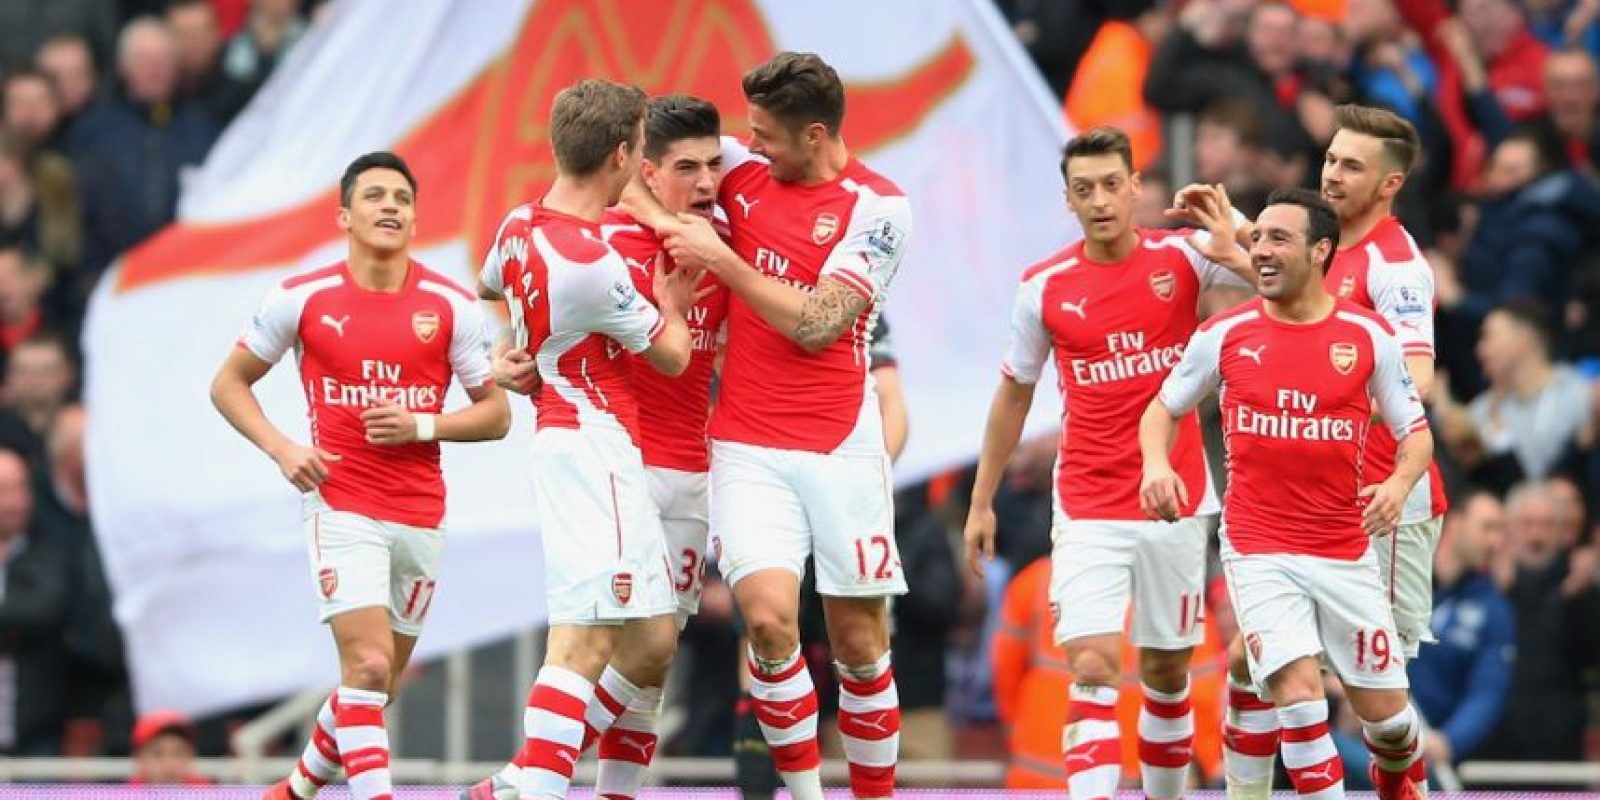 7. Arsenal (Inglaterra) / 402 millones de euros. Foto: Getty Images